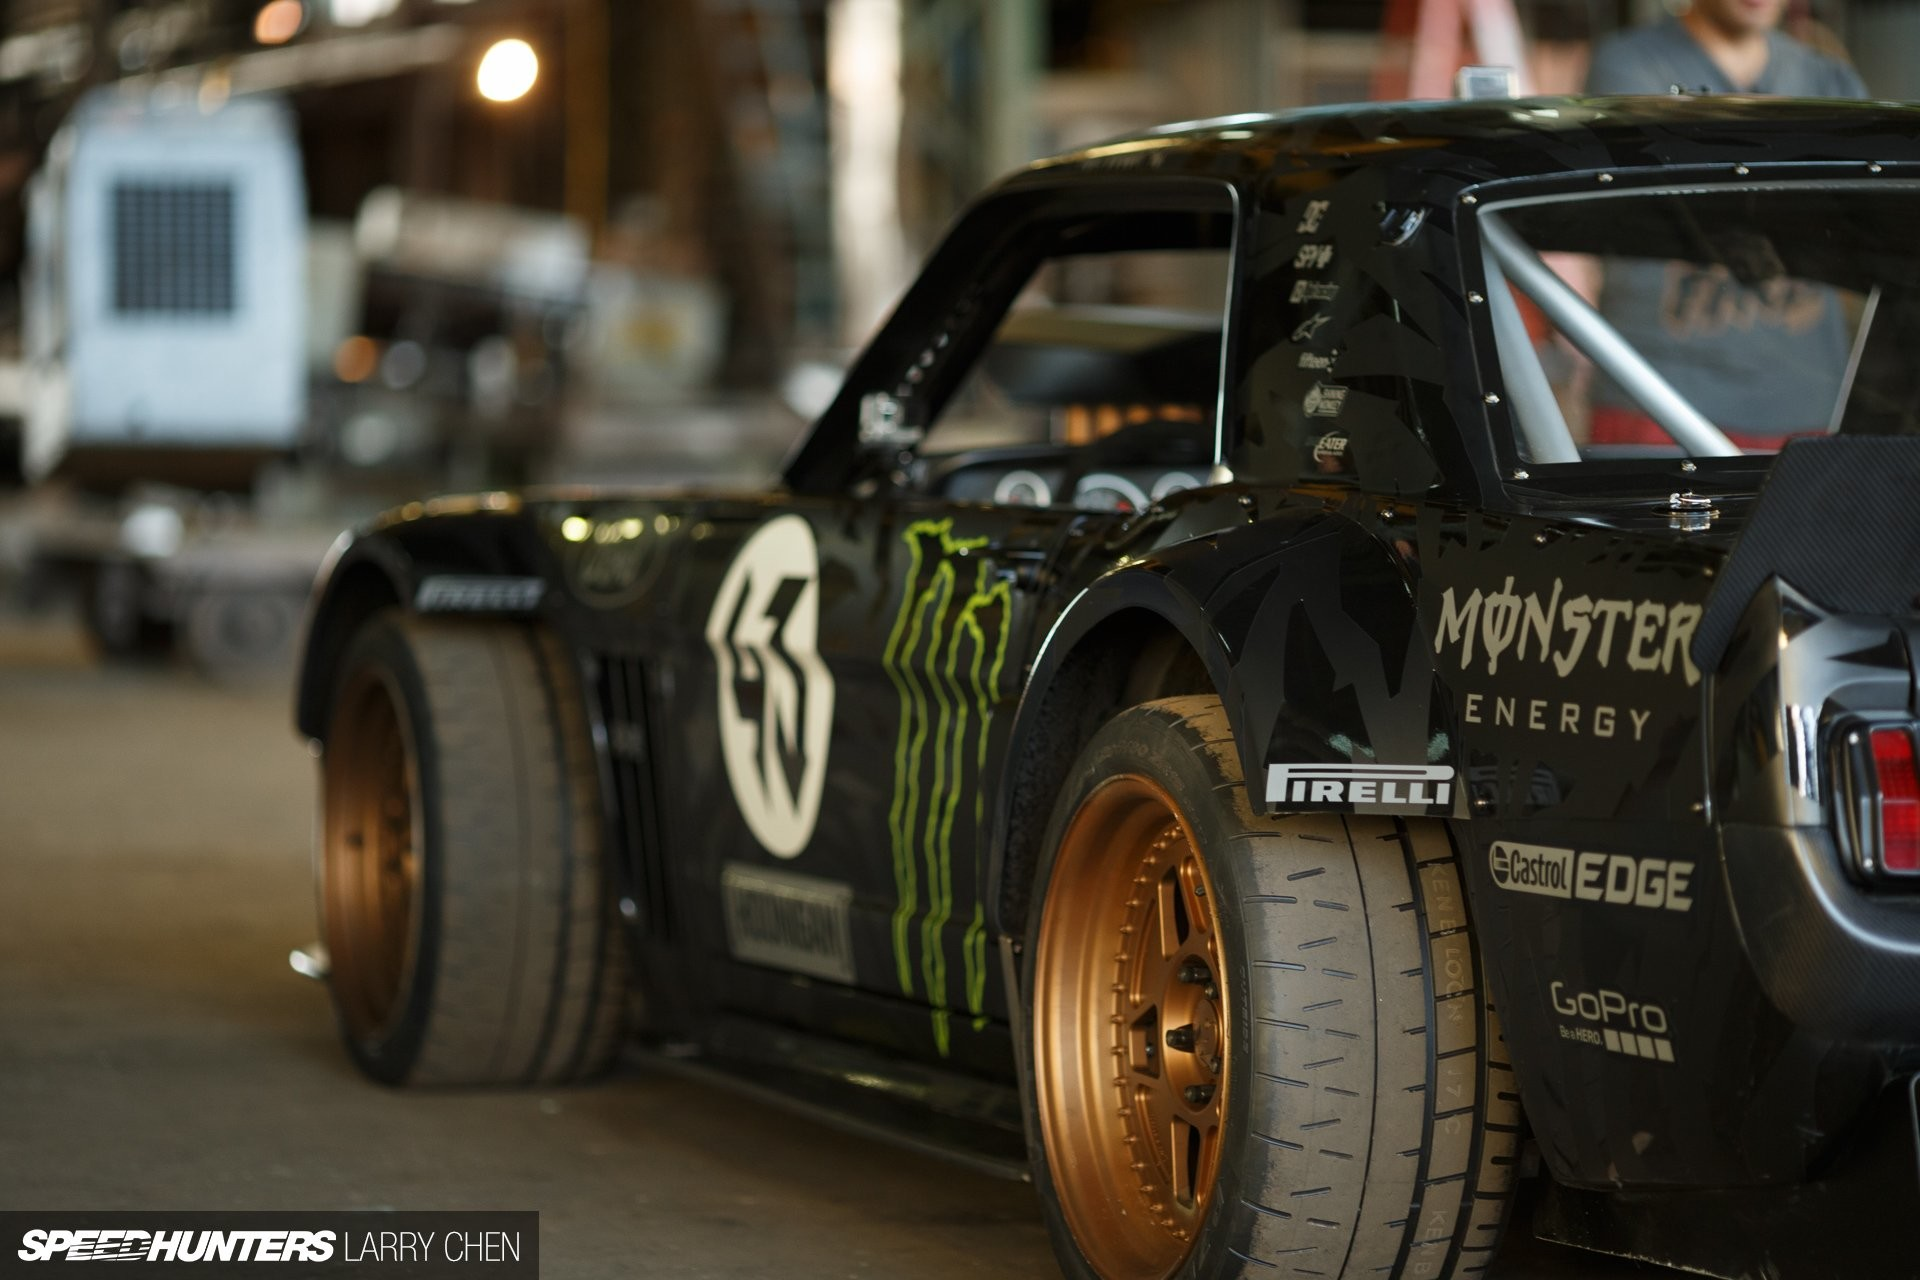 1920x1280 1965 Ford Mustang Hoonigan ASD Gymkhana-Seven drift hot rod rods muscle  race racing monster